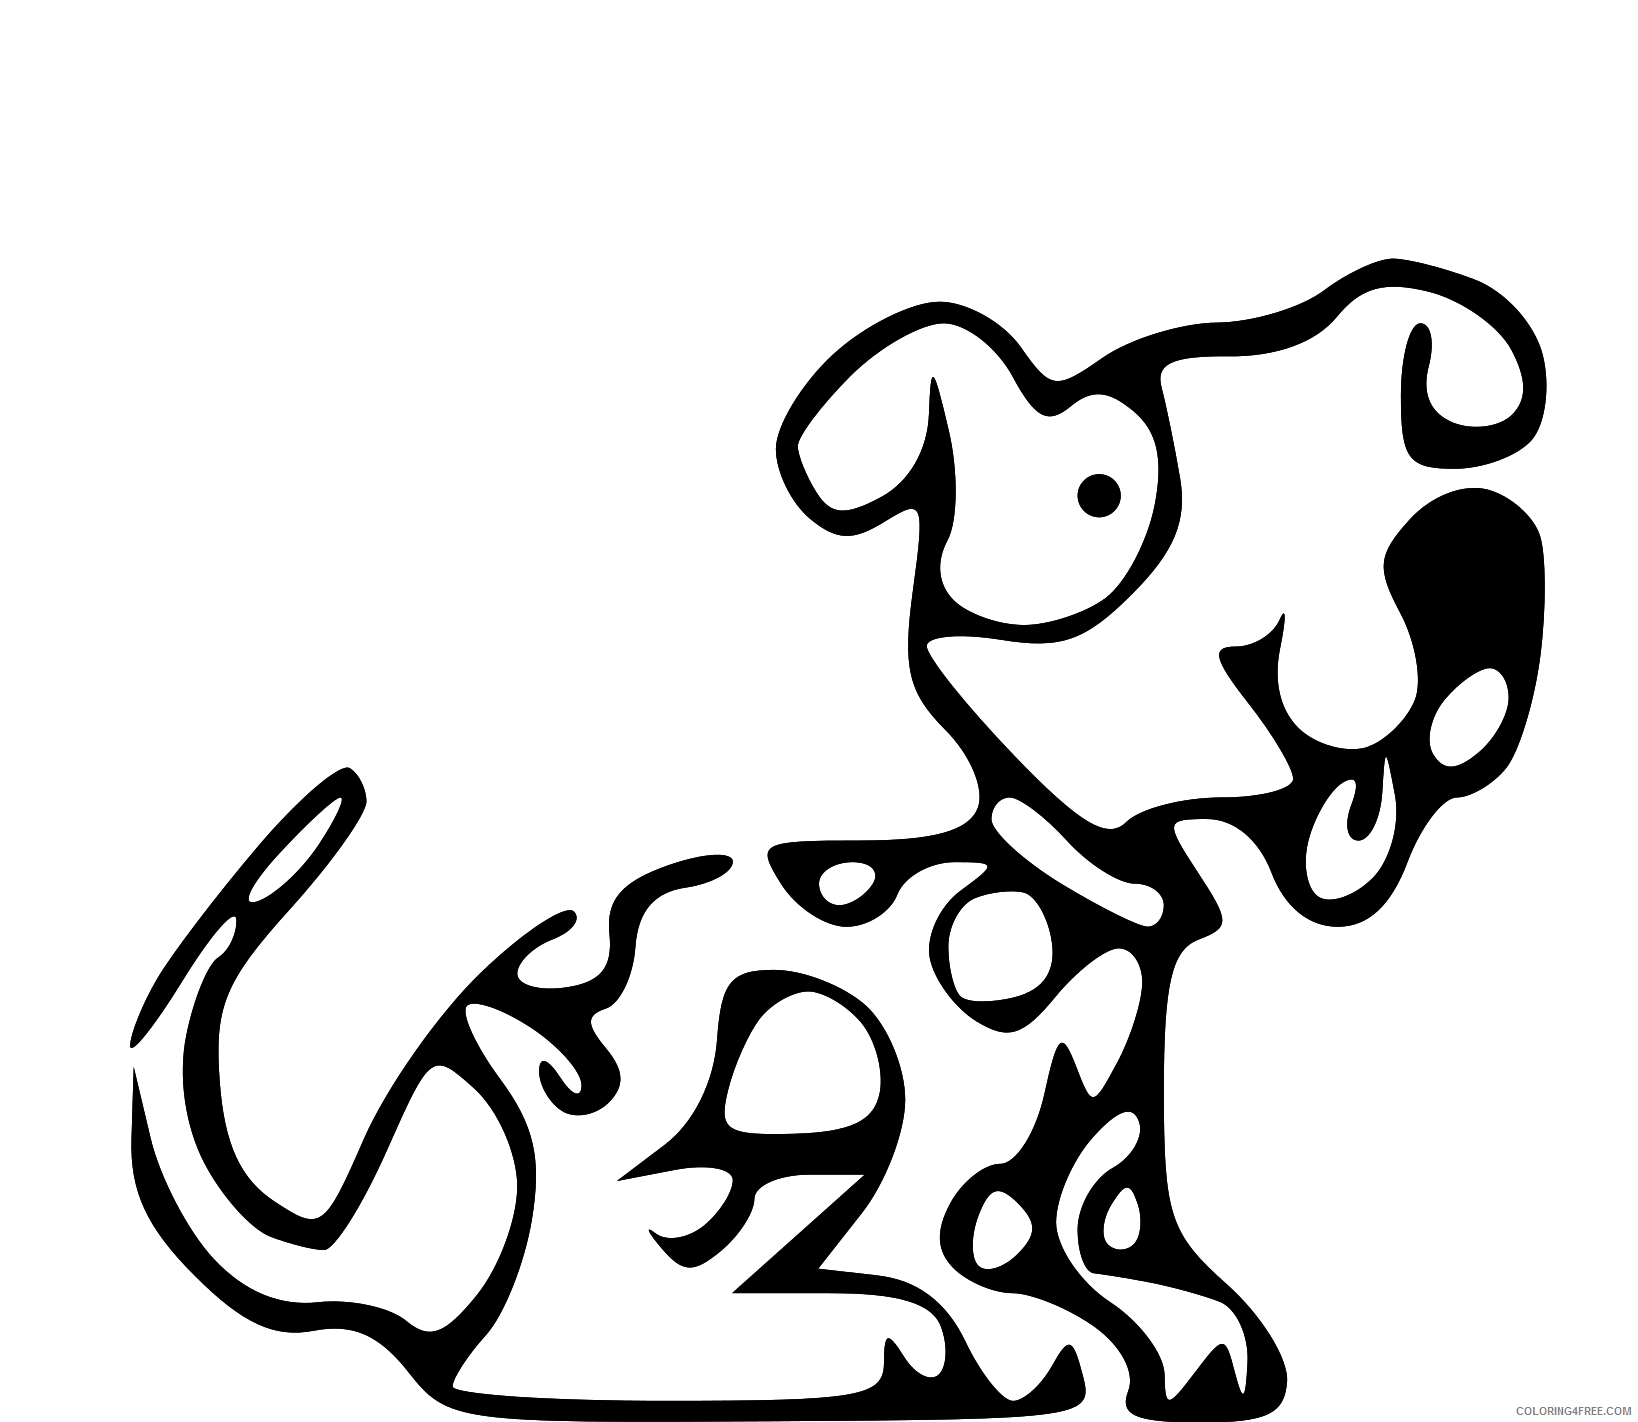 Dog Outline Coloring Pages lds dog clip art Printable Coloring4free